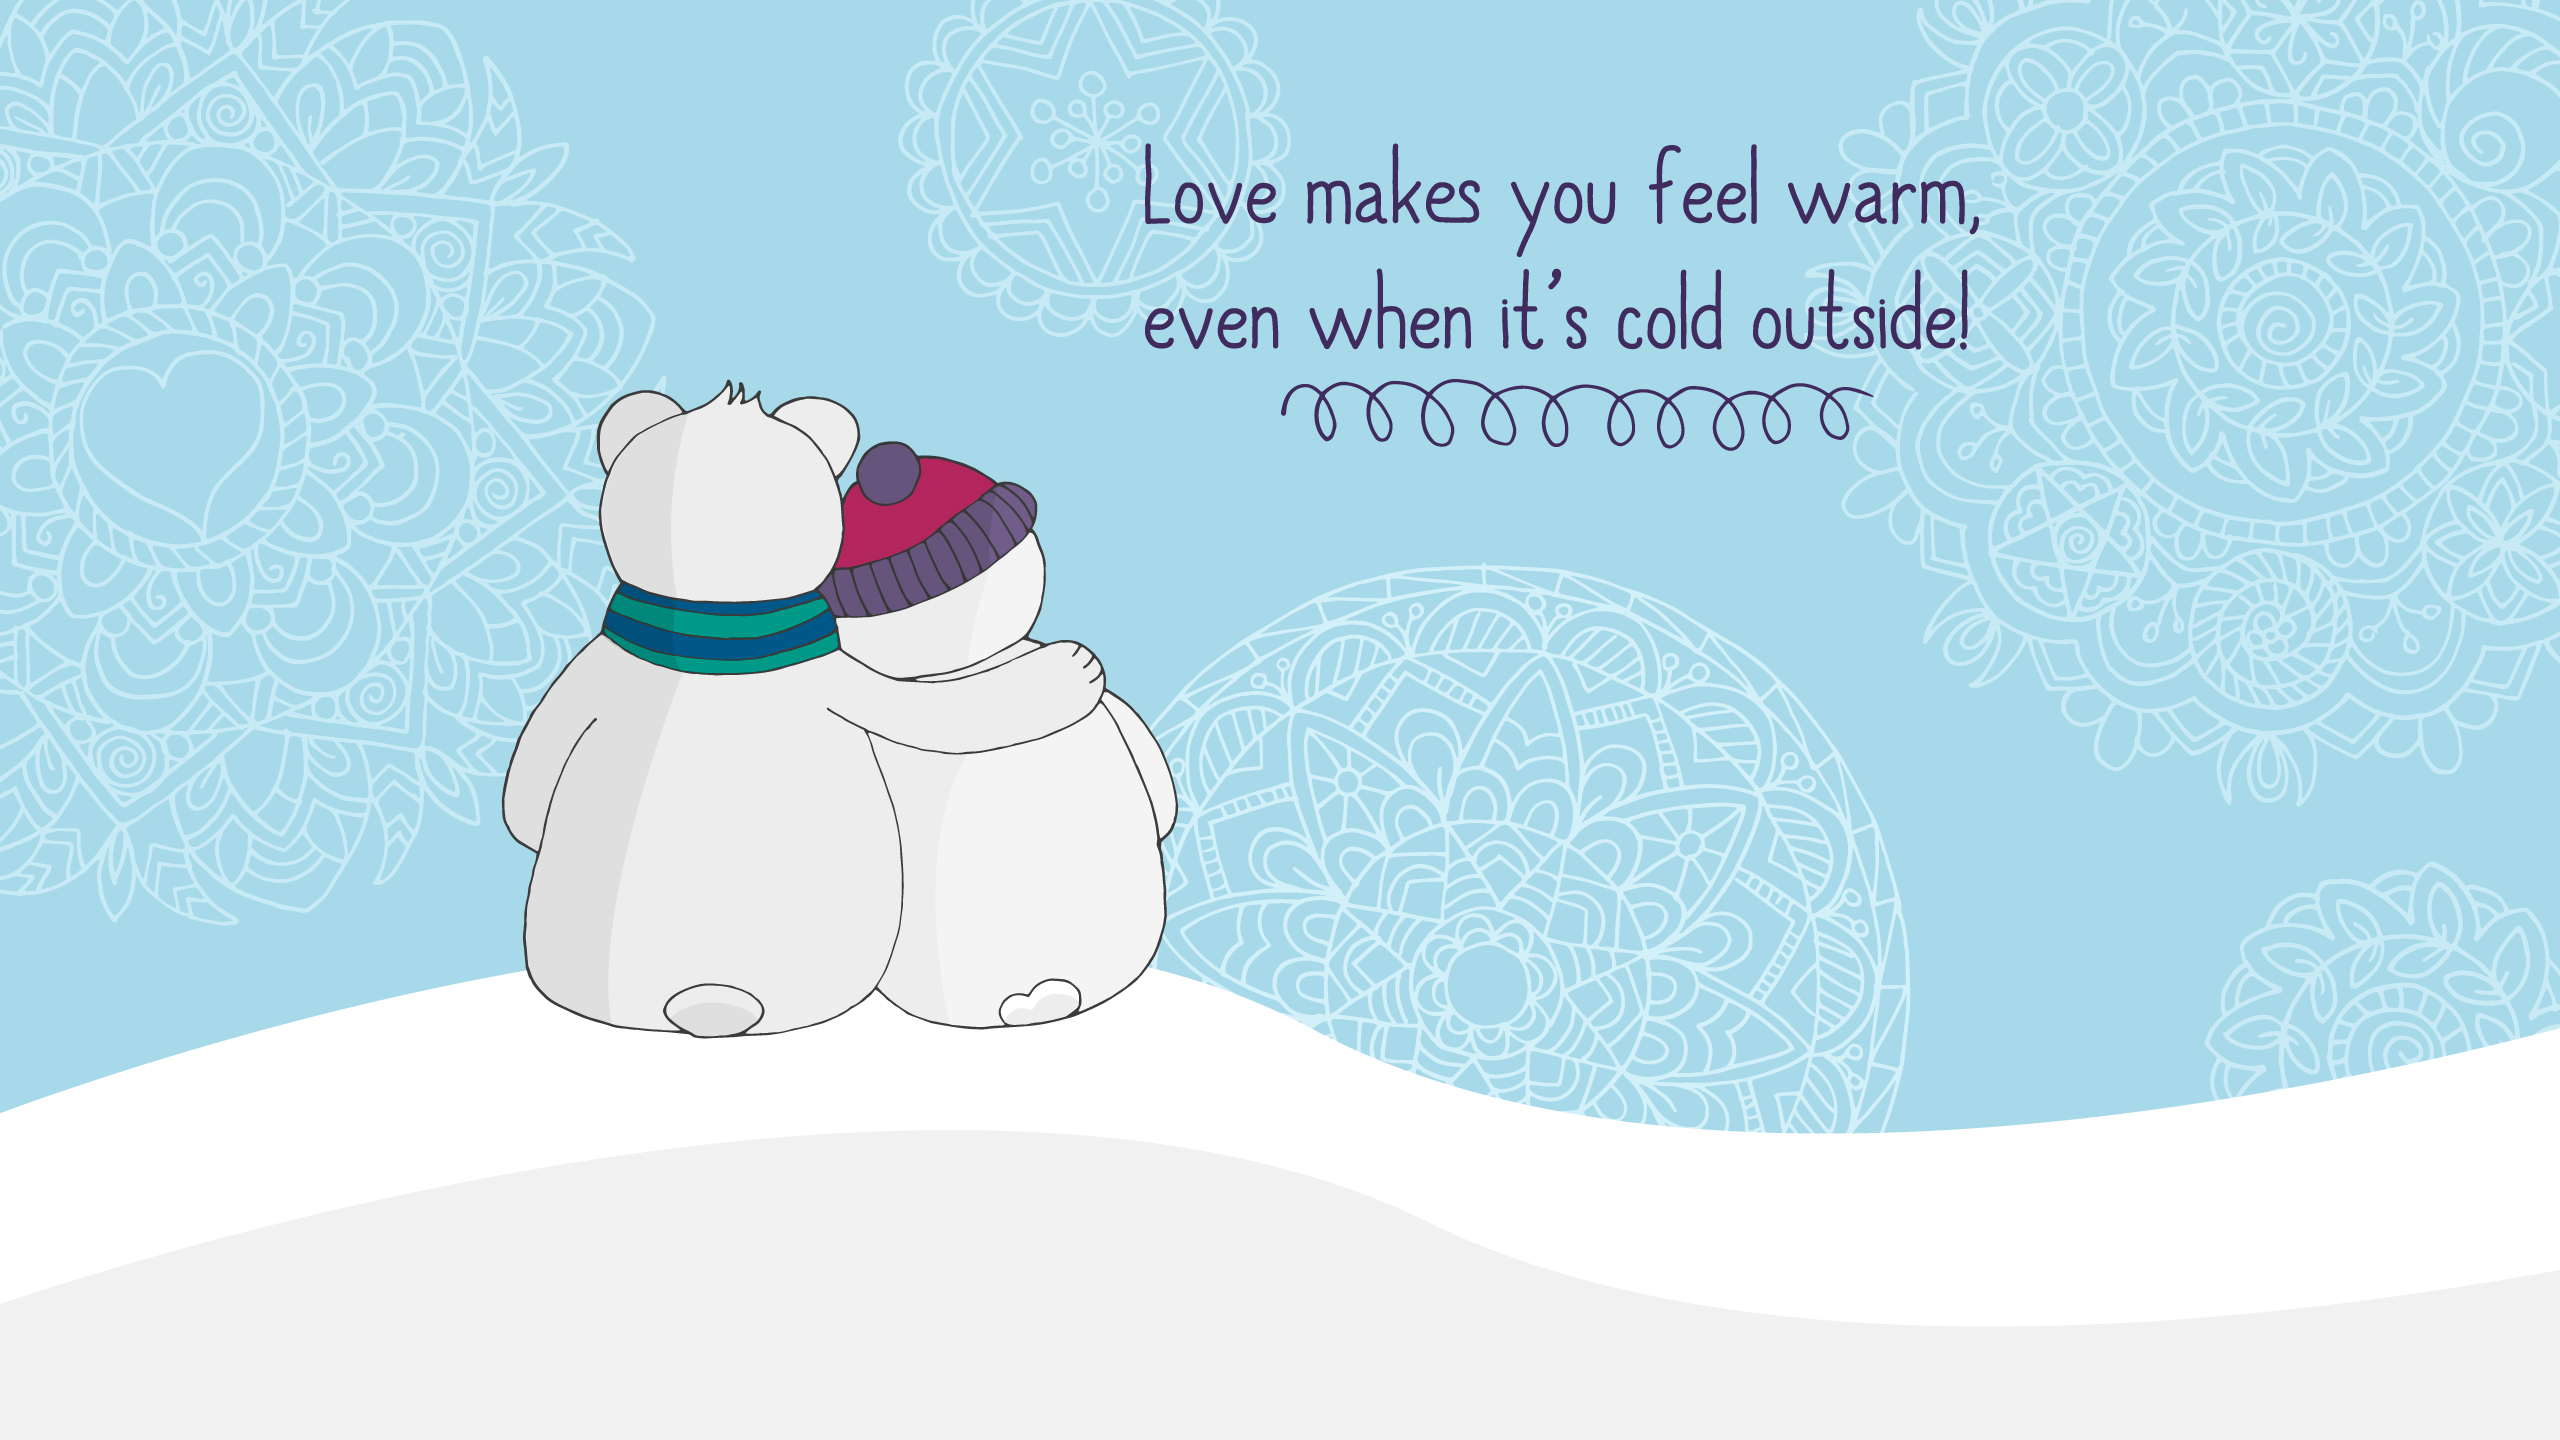 Love makes you warm9485814443 - Love makes you warm - You, Warm, makes, Love, Frozen